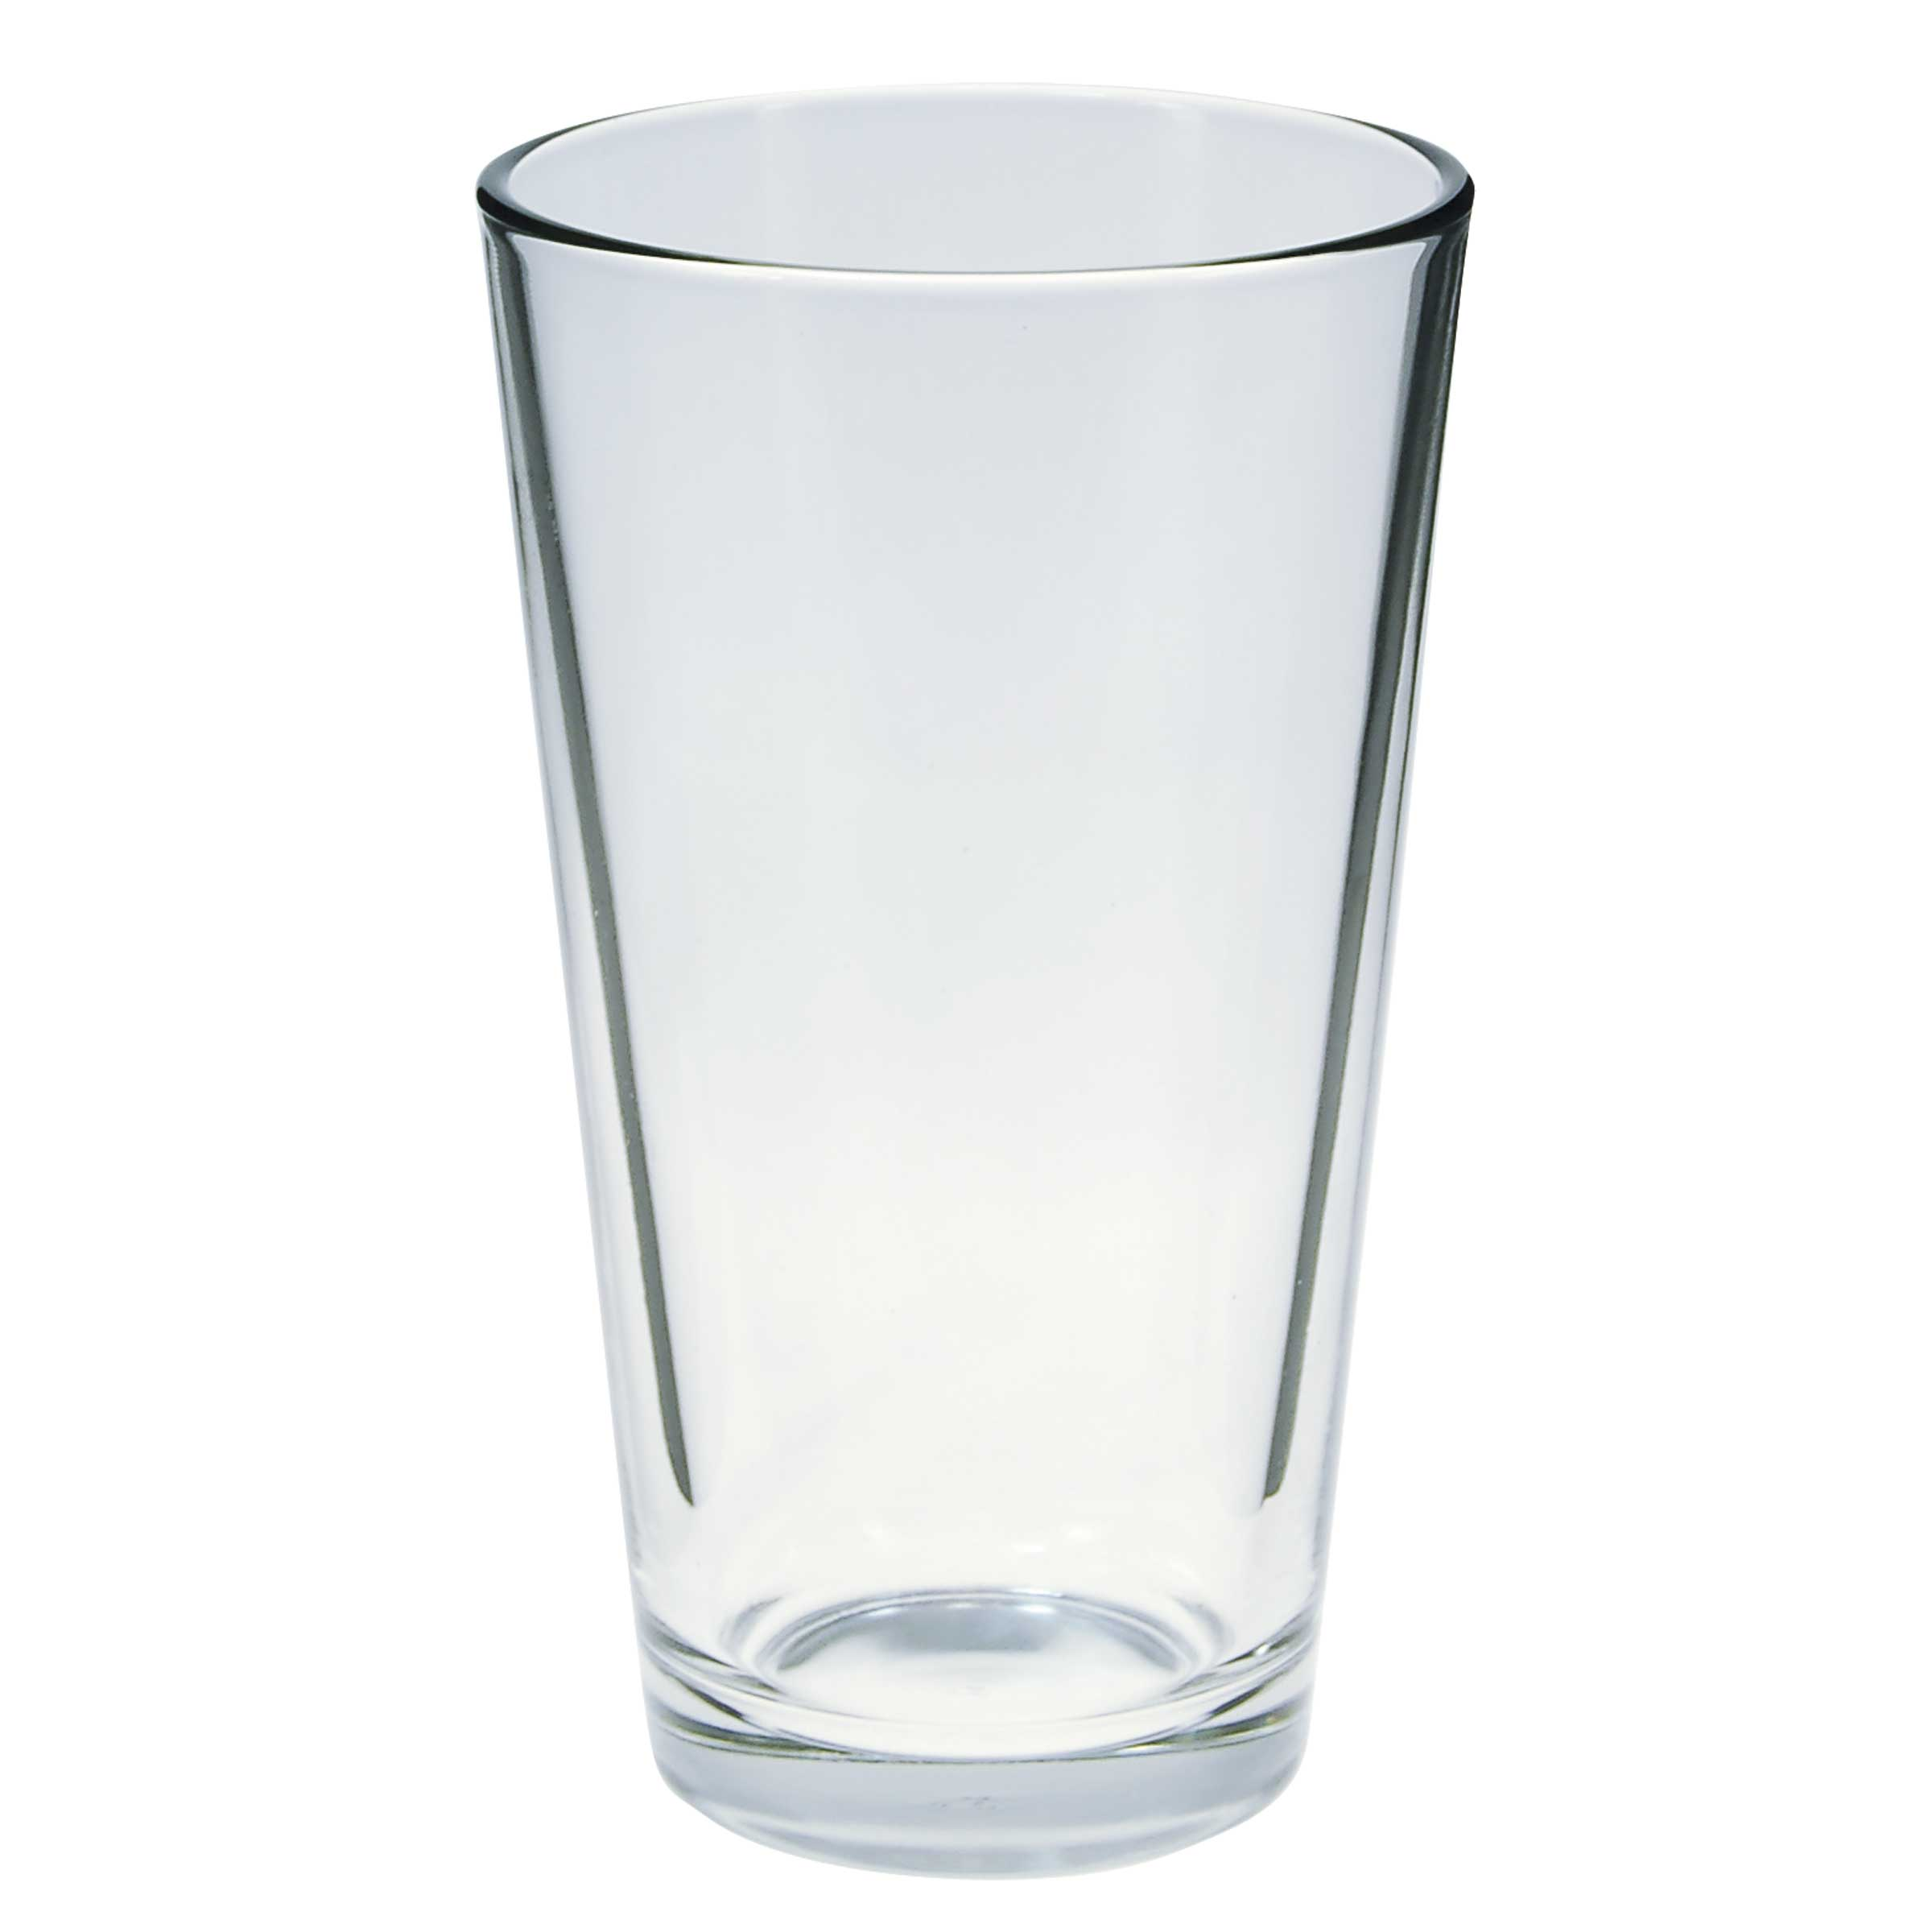 Placeit template of an empty pint glass against an orange background.